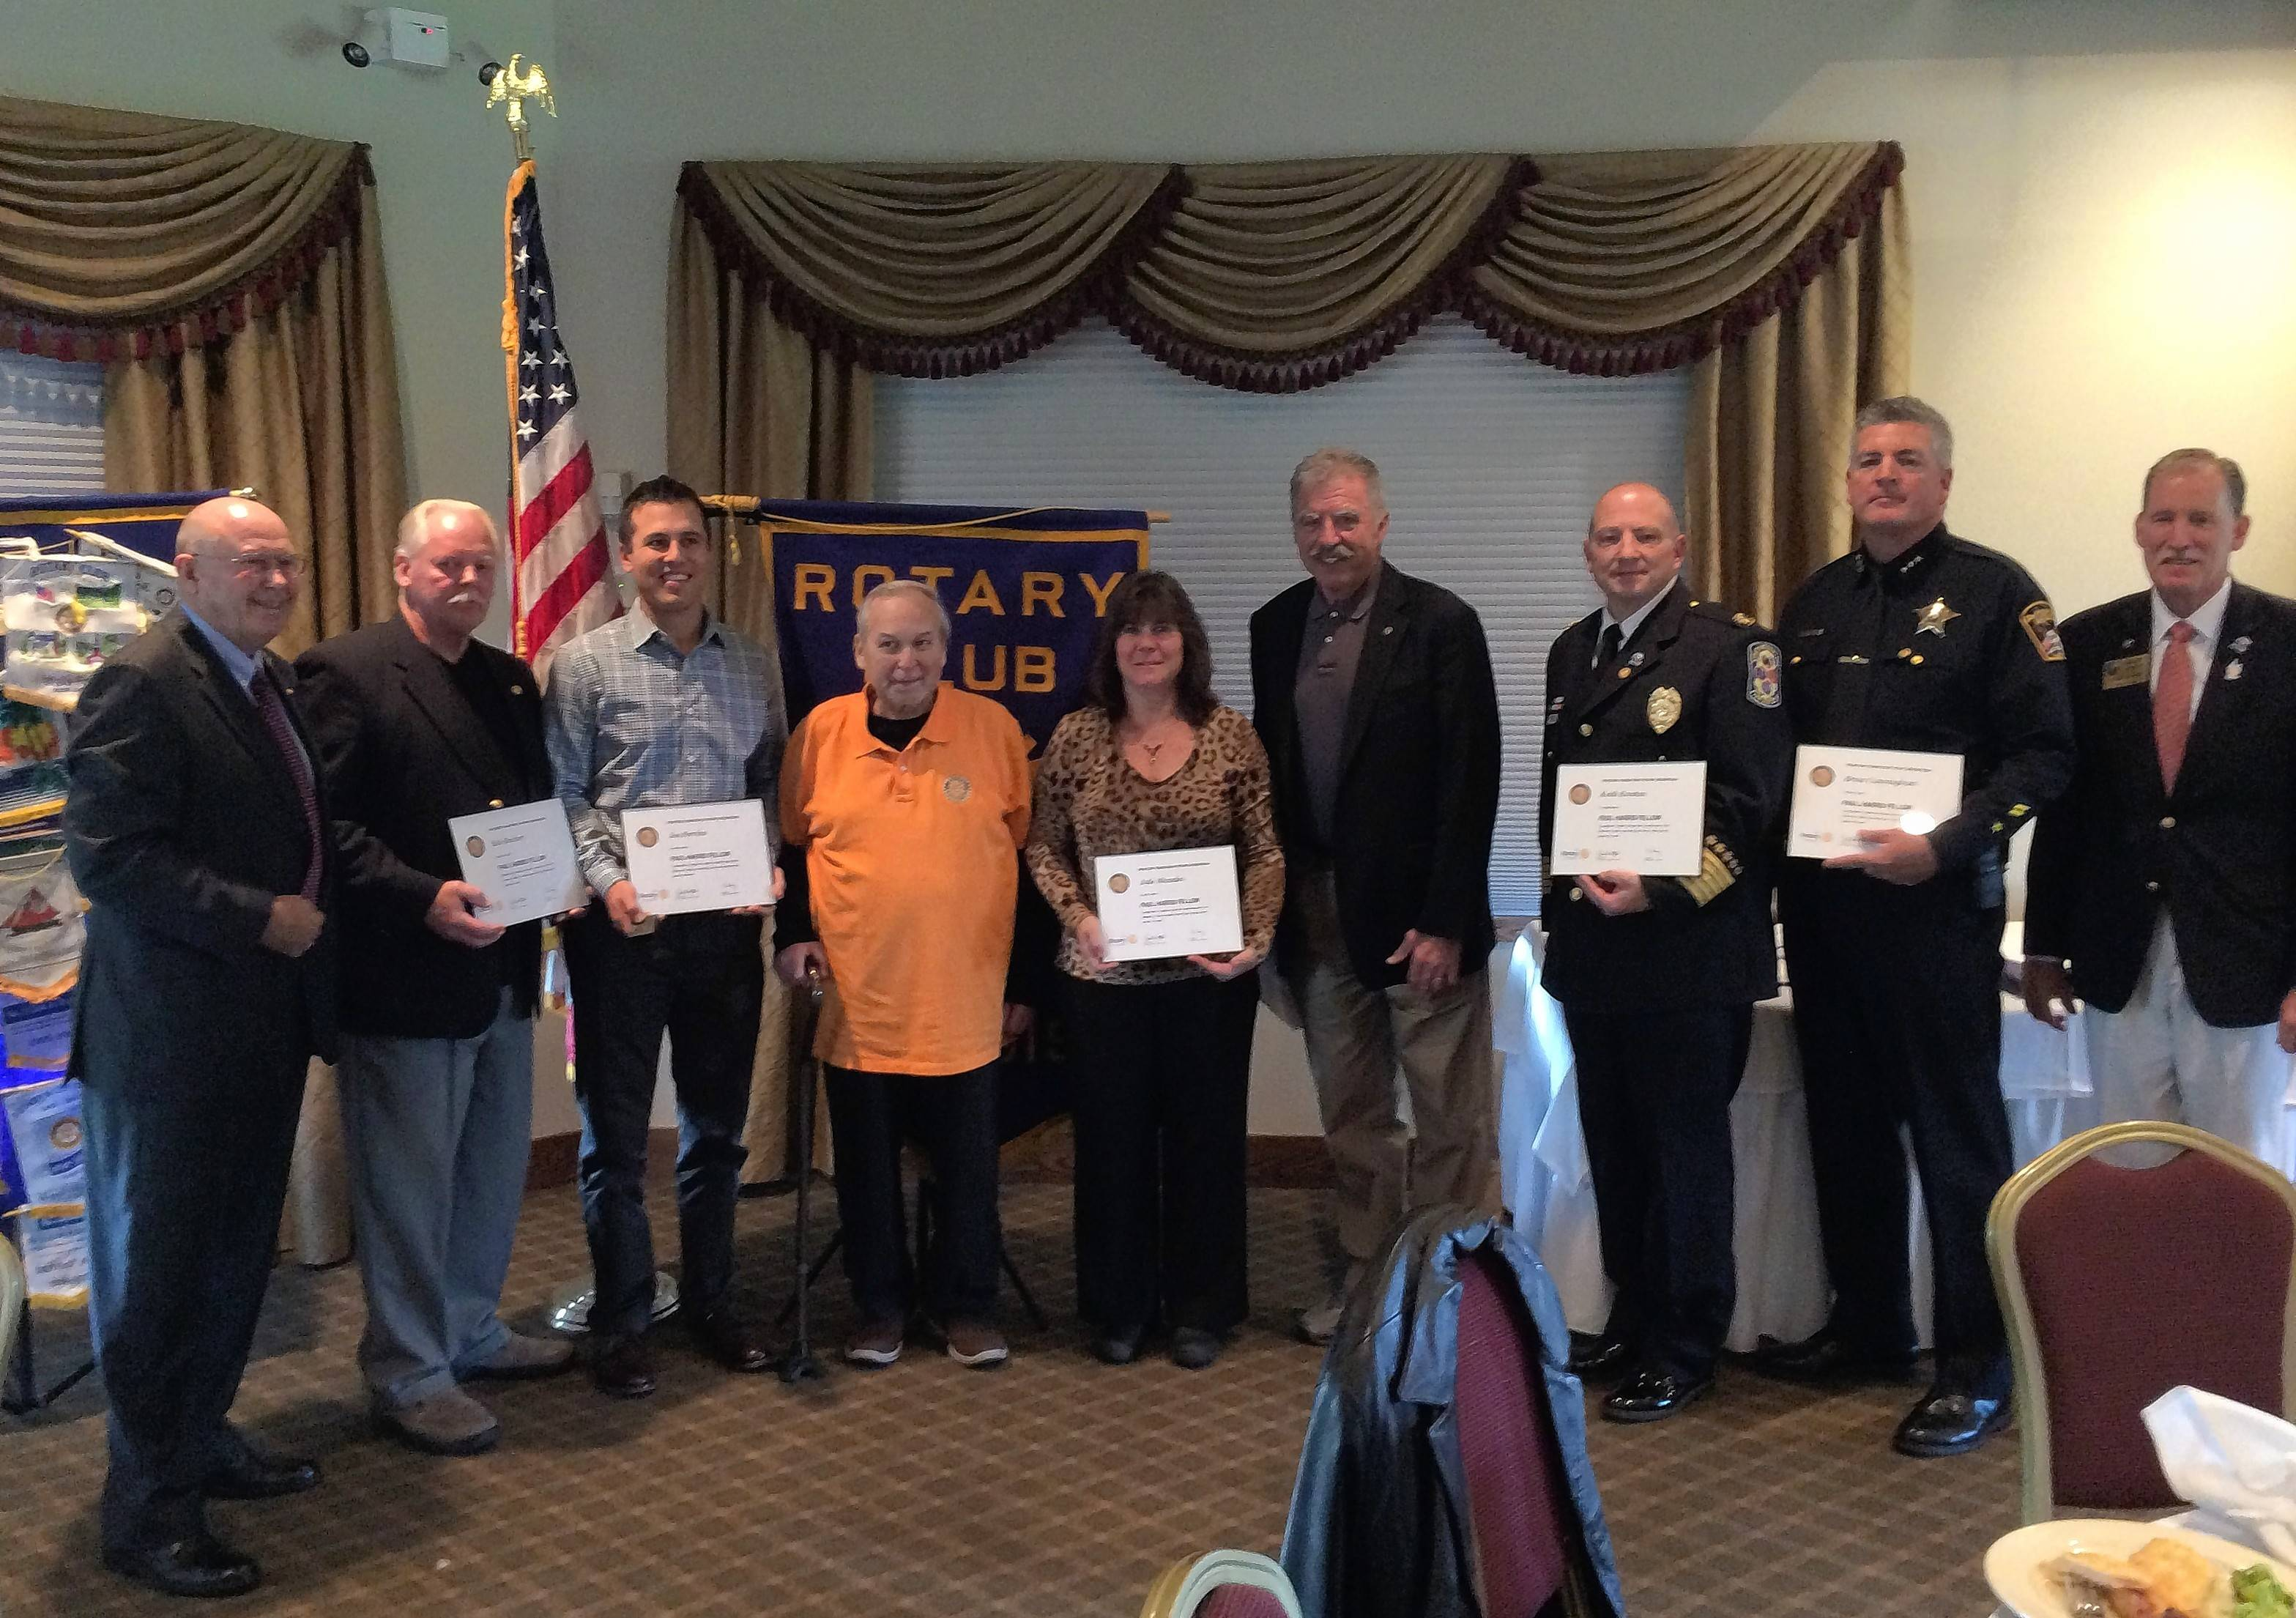 Pictured, from left, are Rich Moore, Rotarian; Bob Reichert of VFW 1578; Nick Perrino (accepting for father Nick) of Home Run Inn Pizza; Jack Briseno, president of Woodridge Rotary; Julie Rhodes, assistant superintendent, Woodridge Park District; John Perry, Rotarian; Keith Krestan, Lisle-Woodridge Fire Chief; Brian Cunningham, Woodridge Chief of Police; and Scott McAdam, Rotary District 6450 Governor.